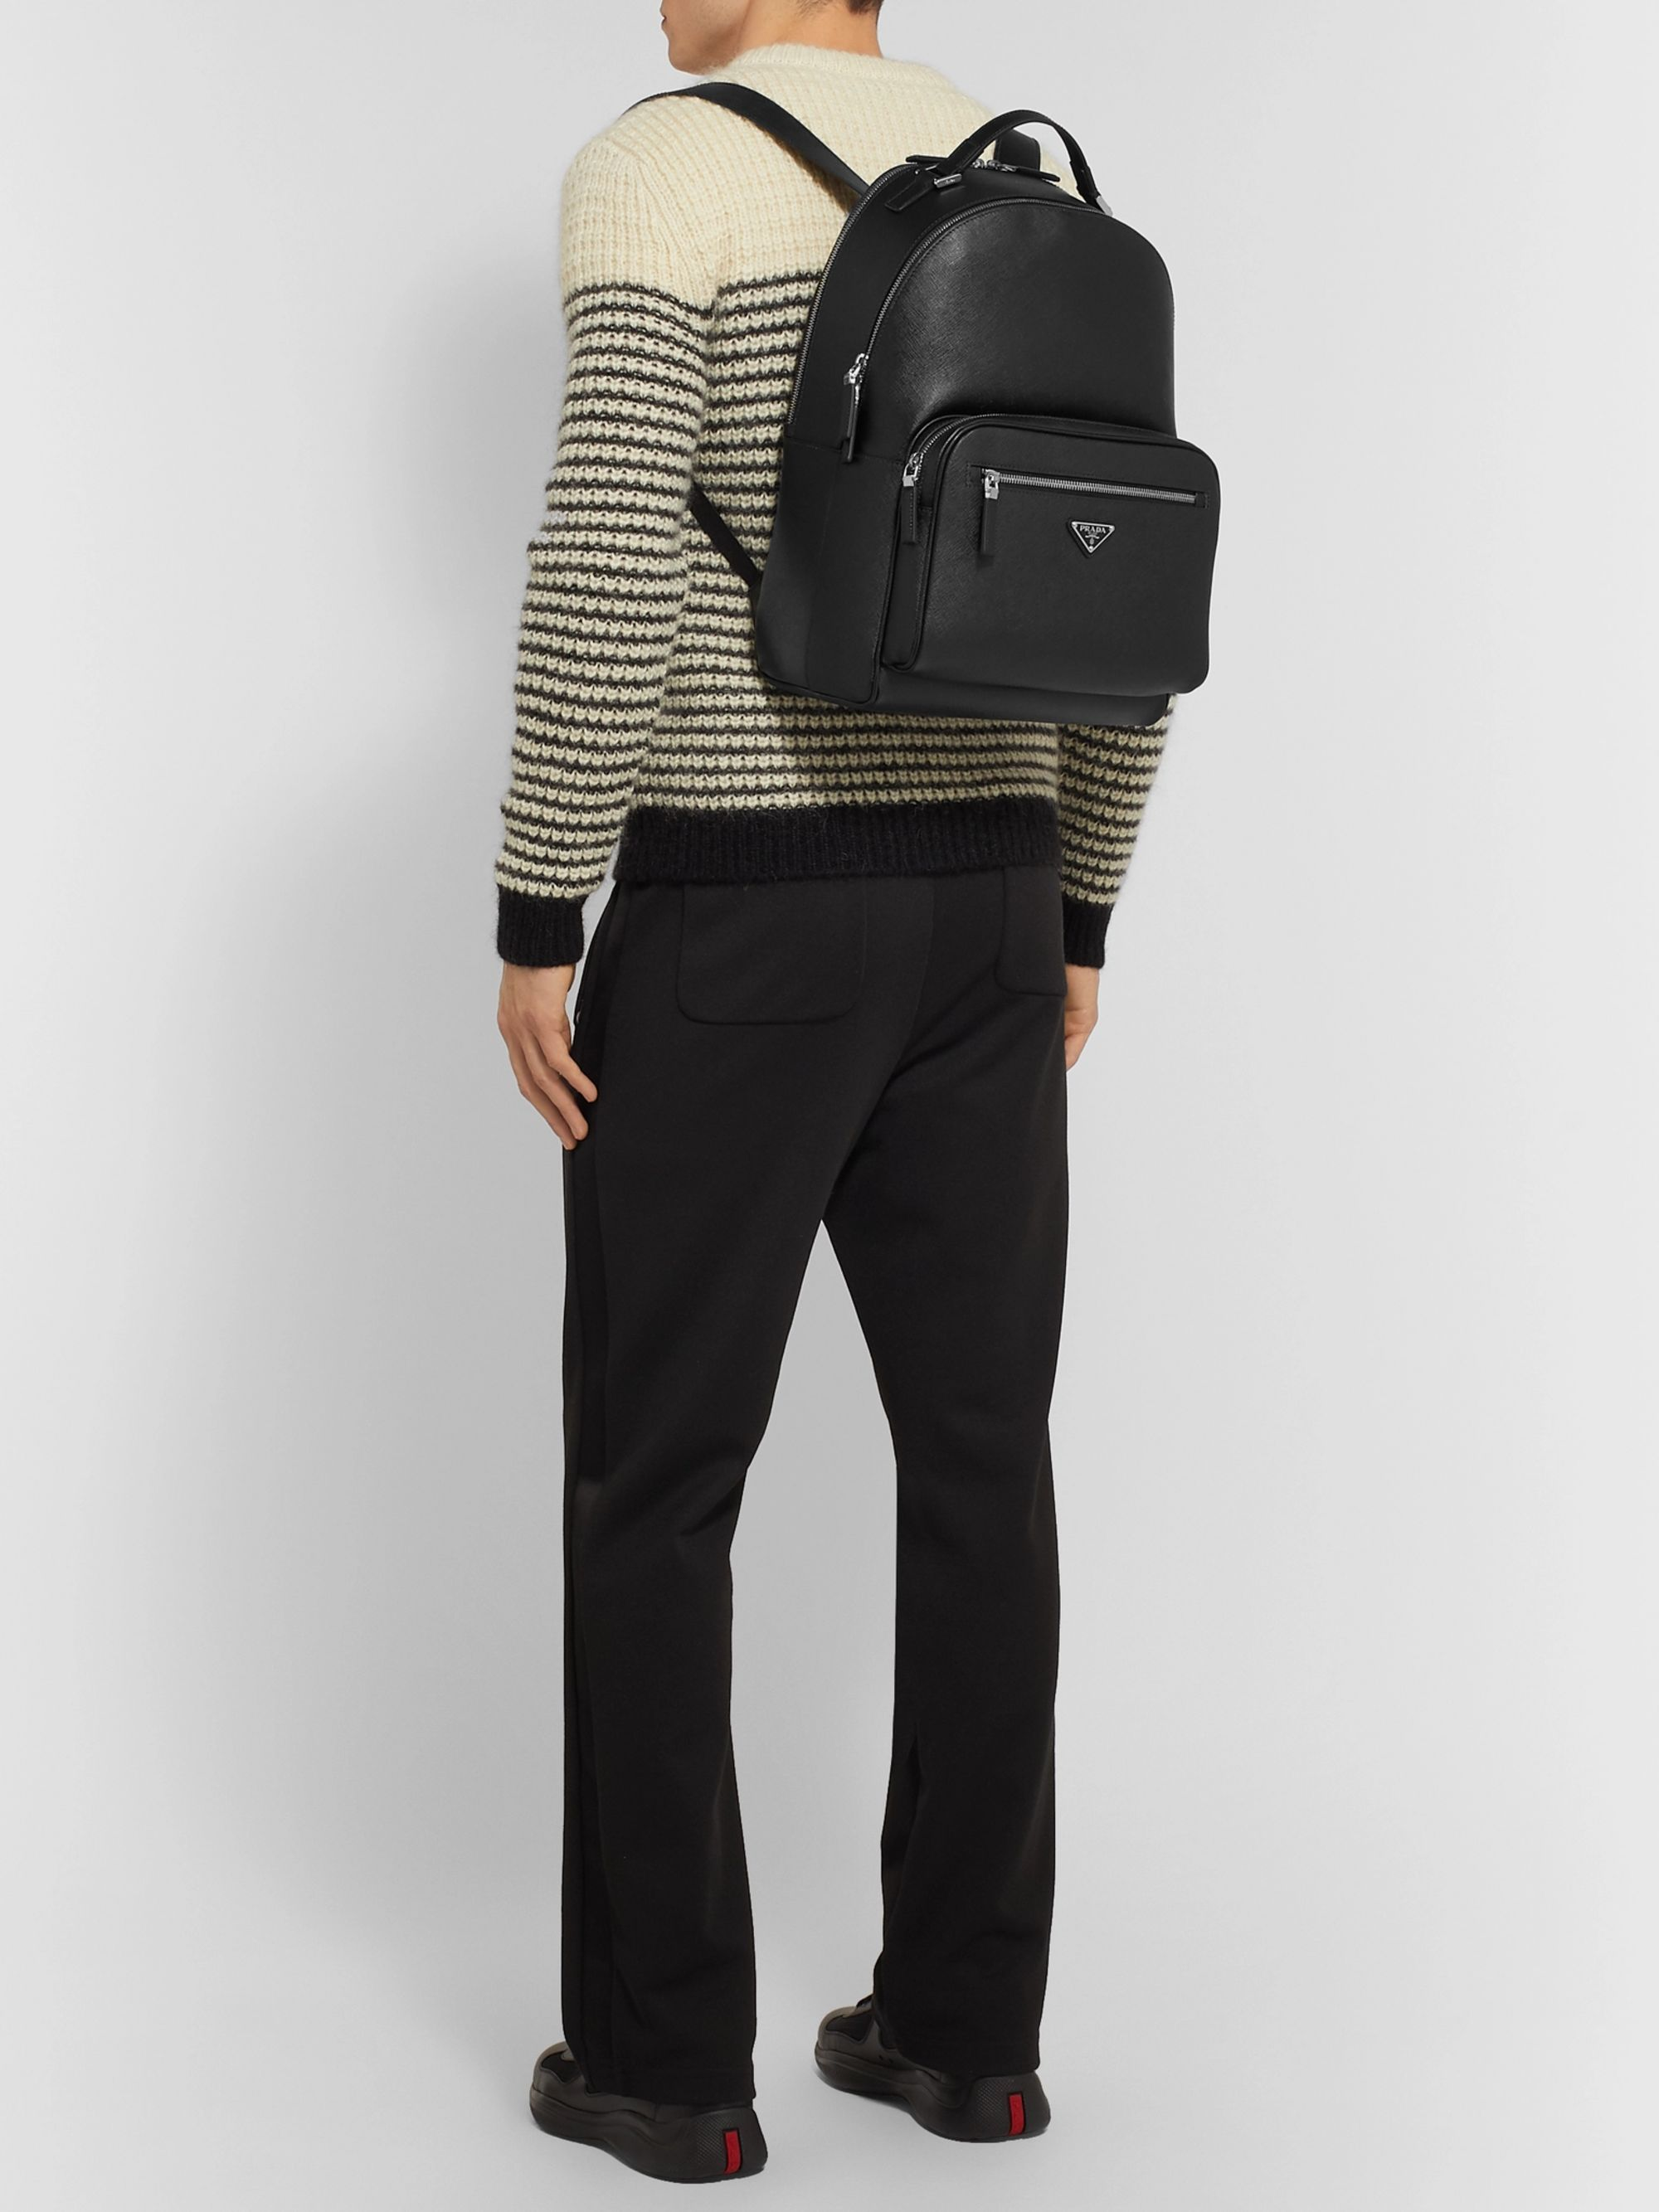 Prada Saffiano Leather Backpack